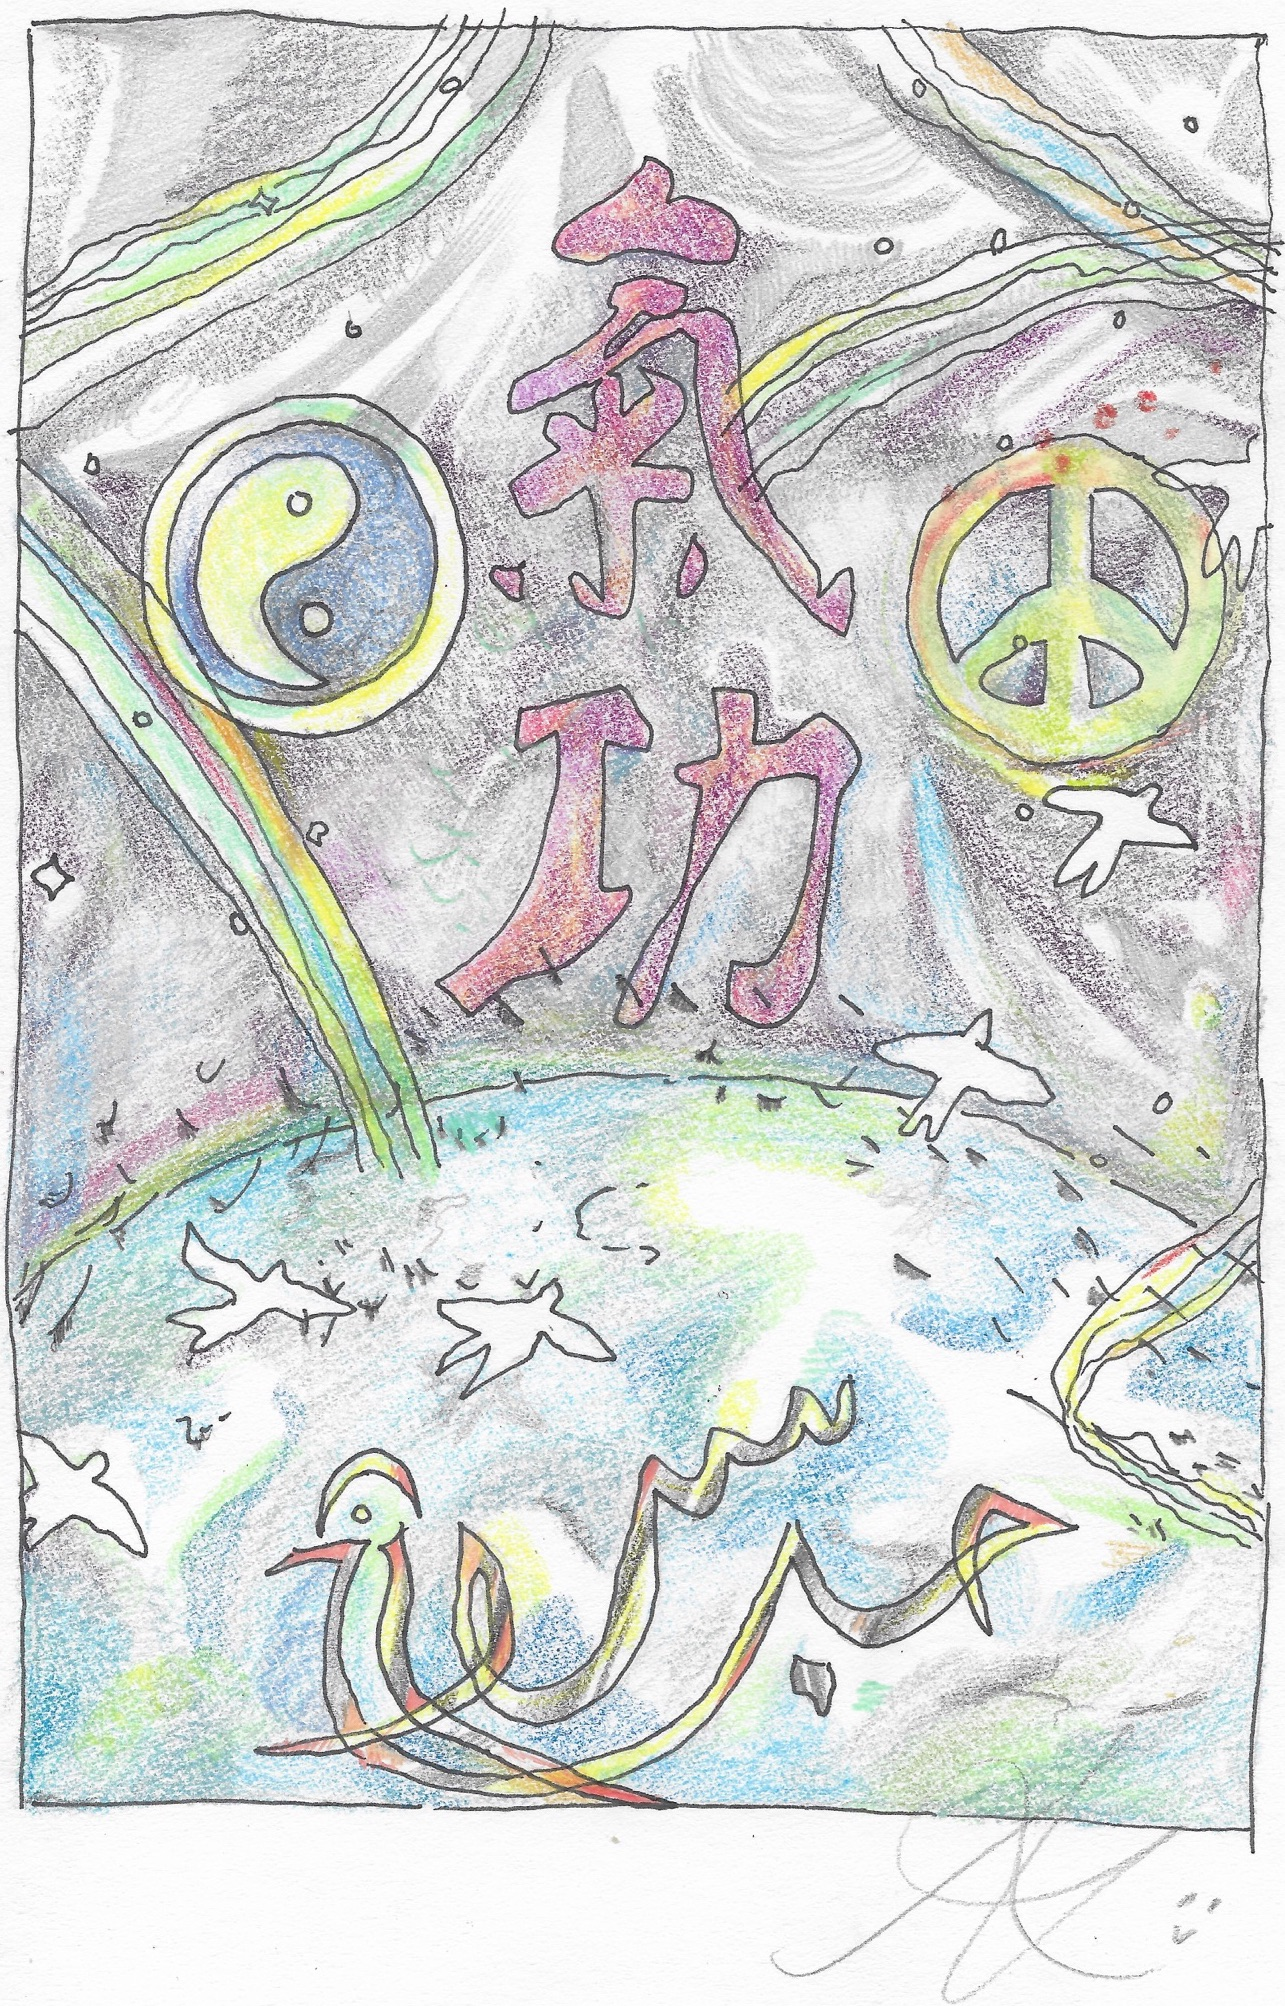 Our One World of Peace Movement